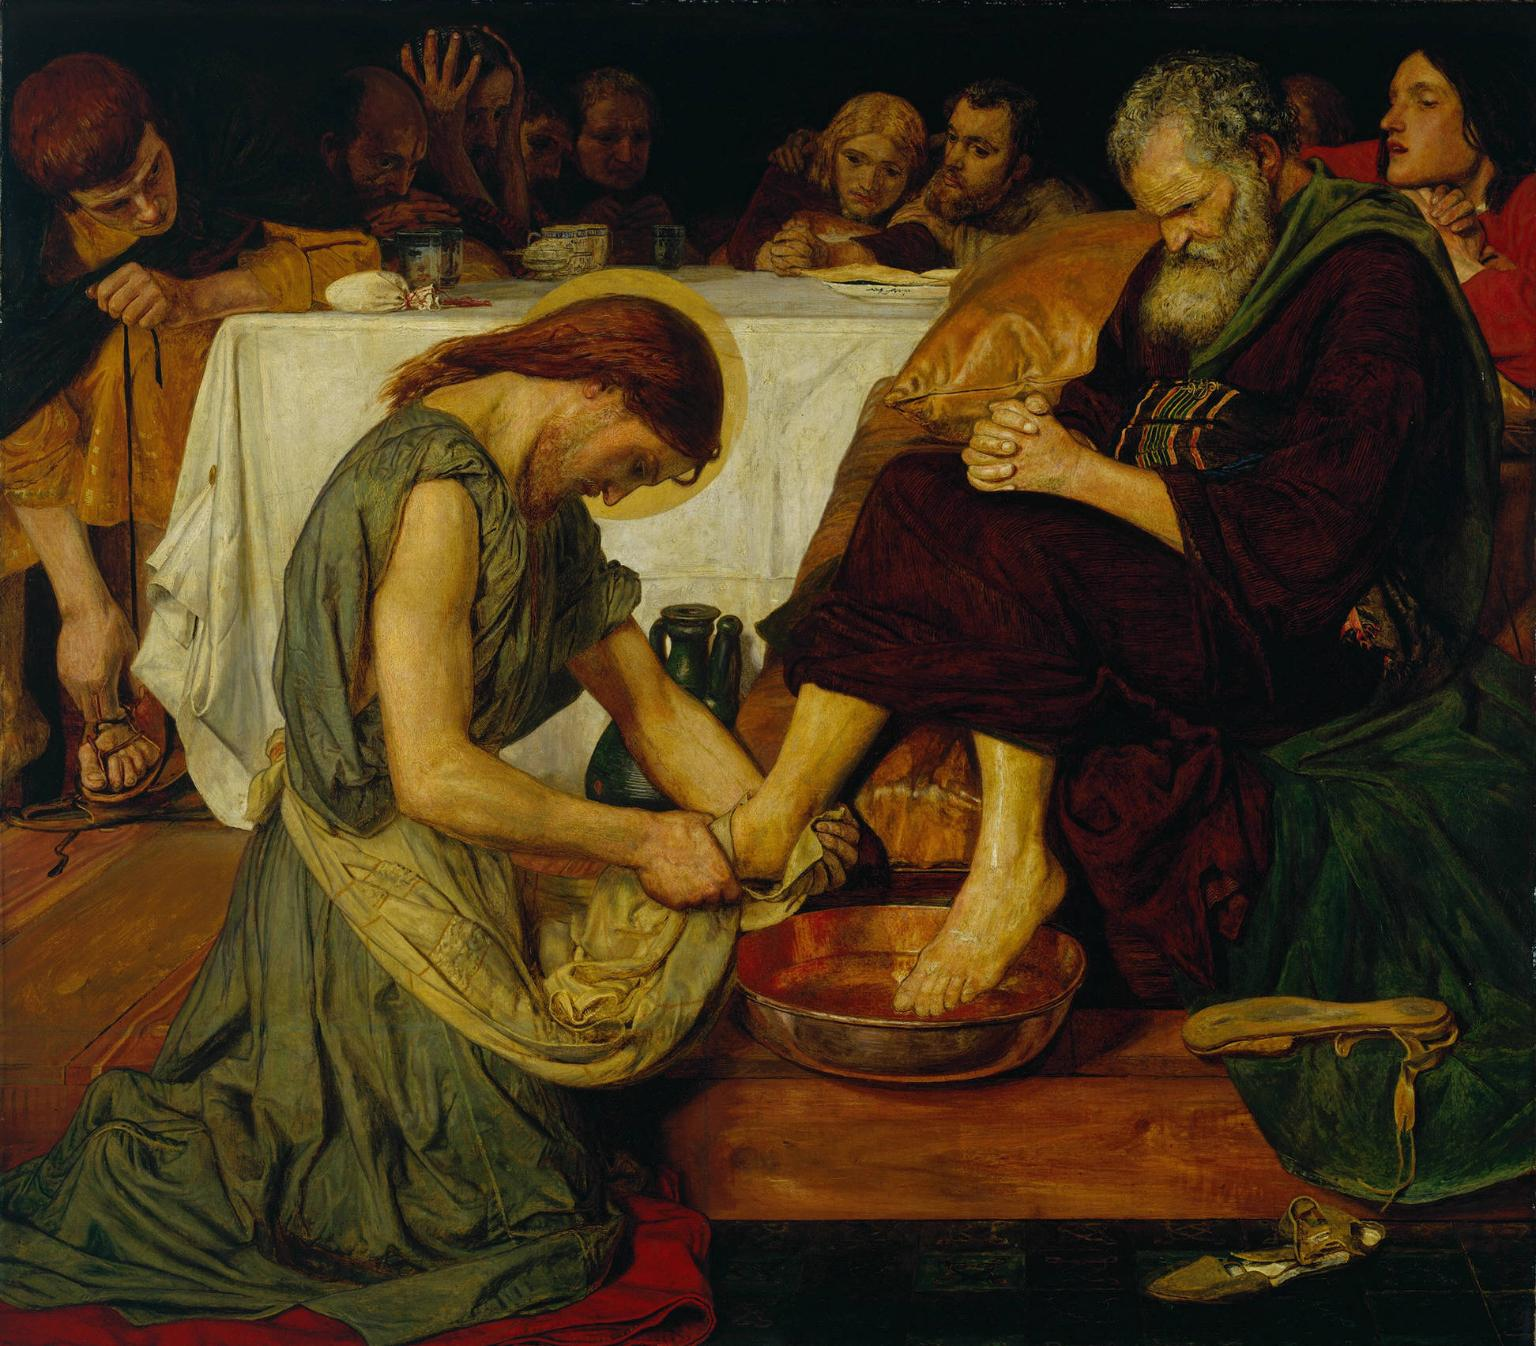 ford-madox-brown-christ-washing-peters-feet-1851-56-2